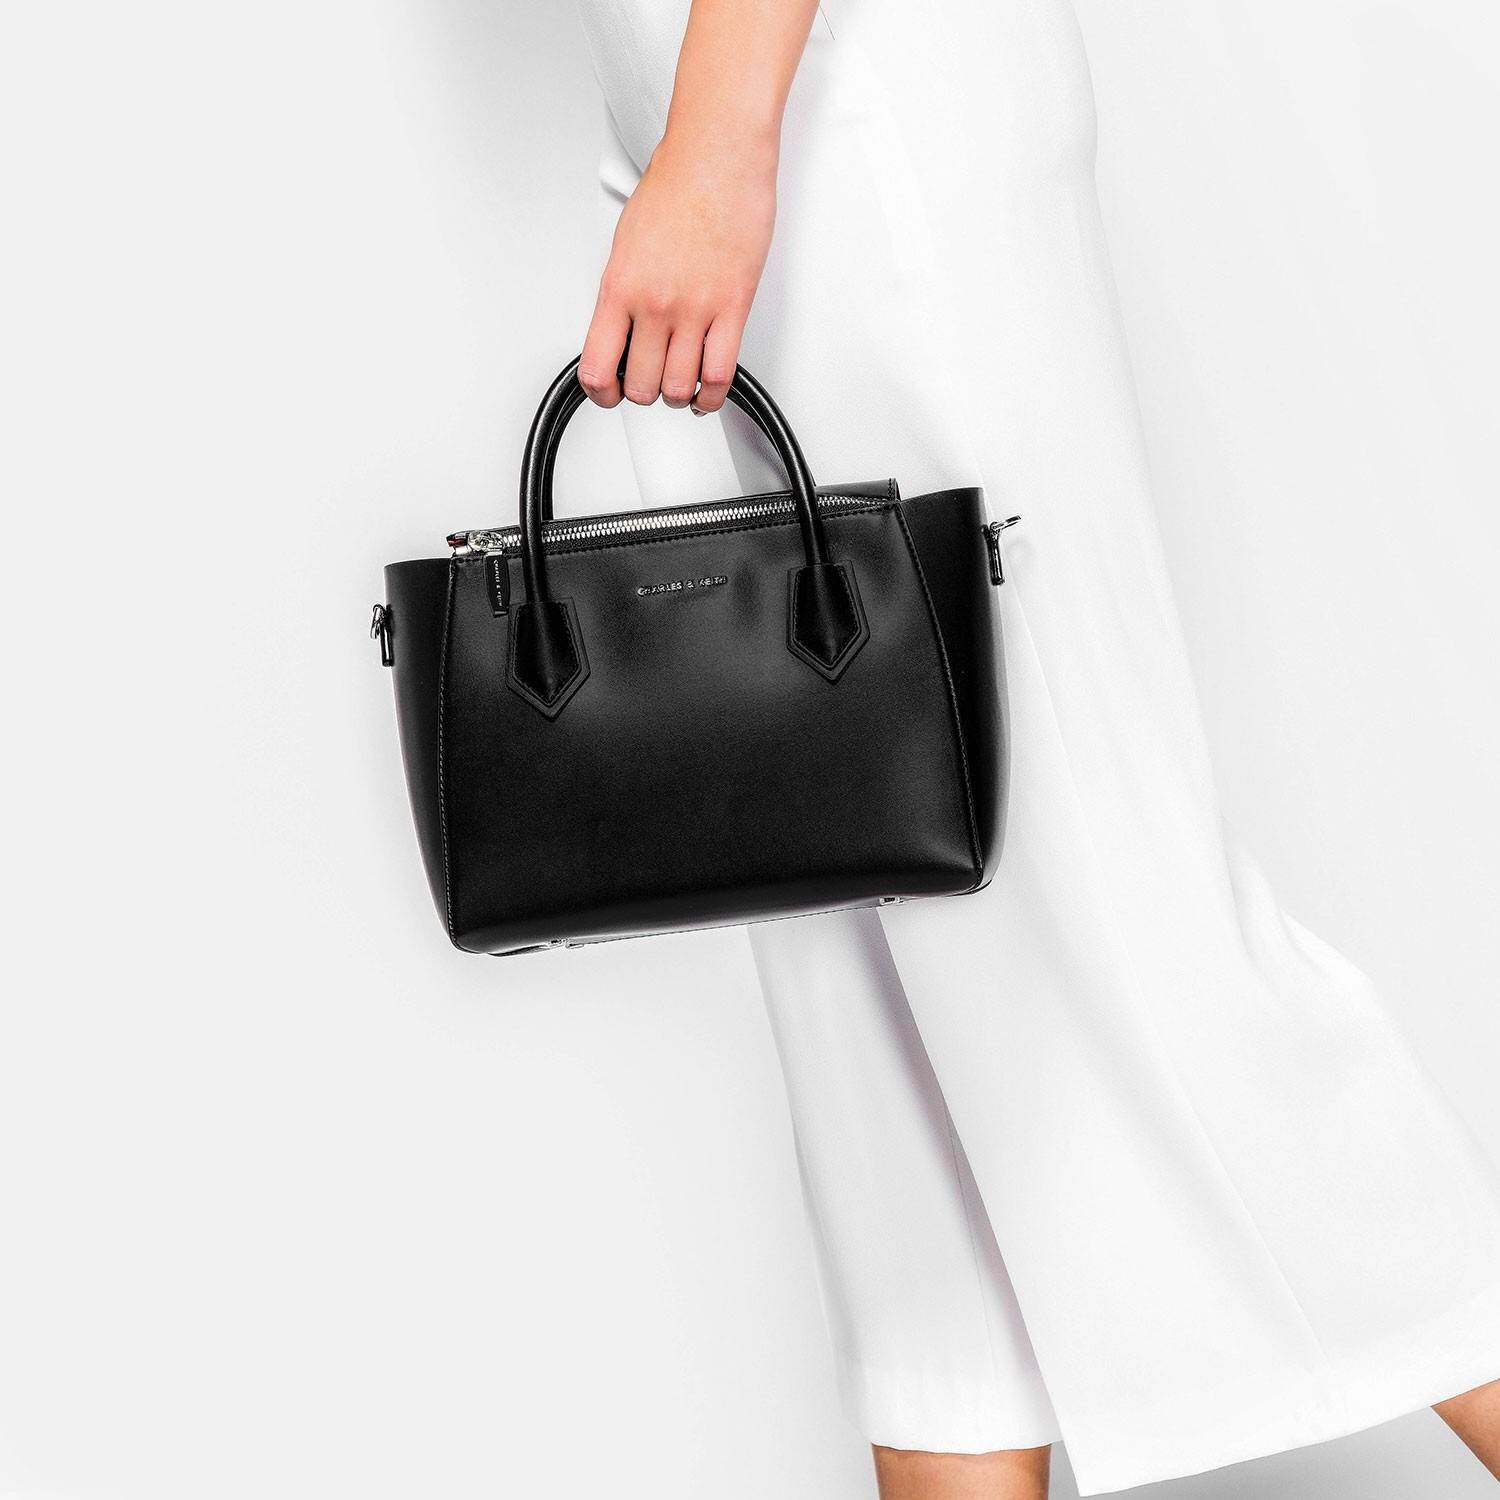 CHARLES & KEITH HANDLE BAG September 2017